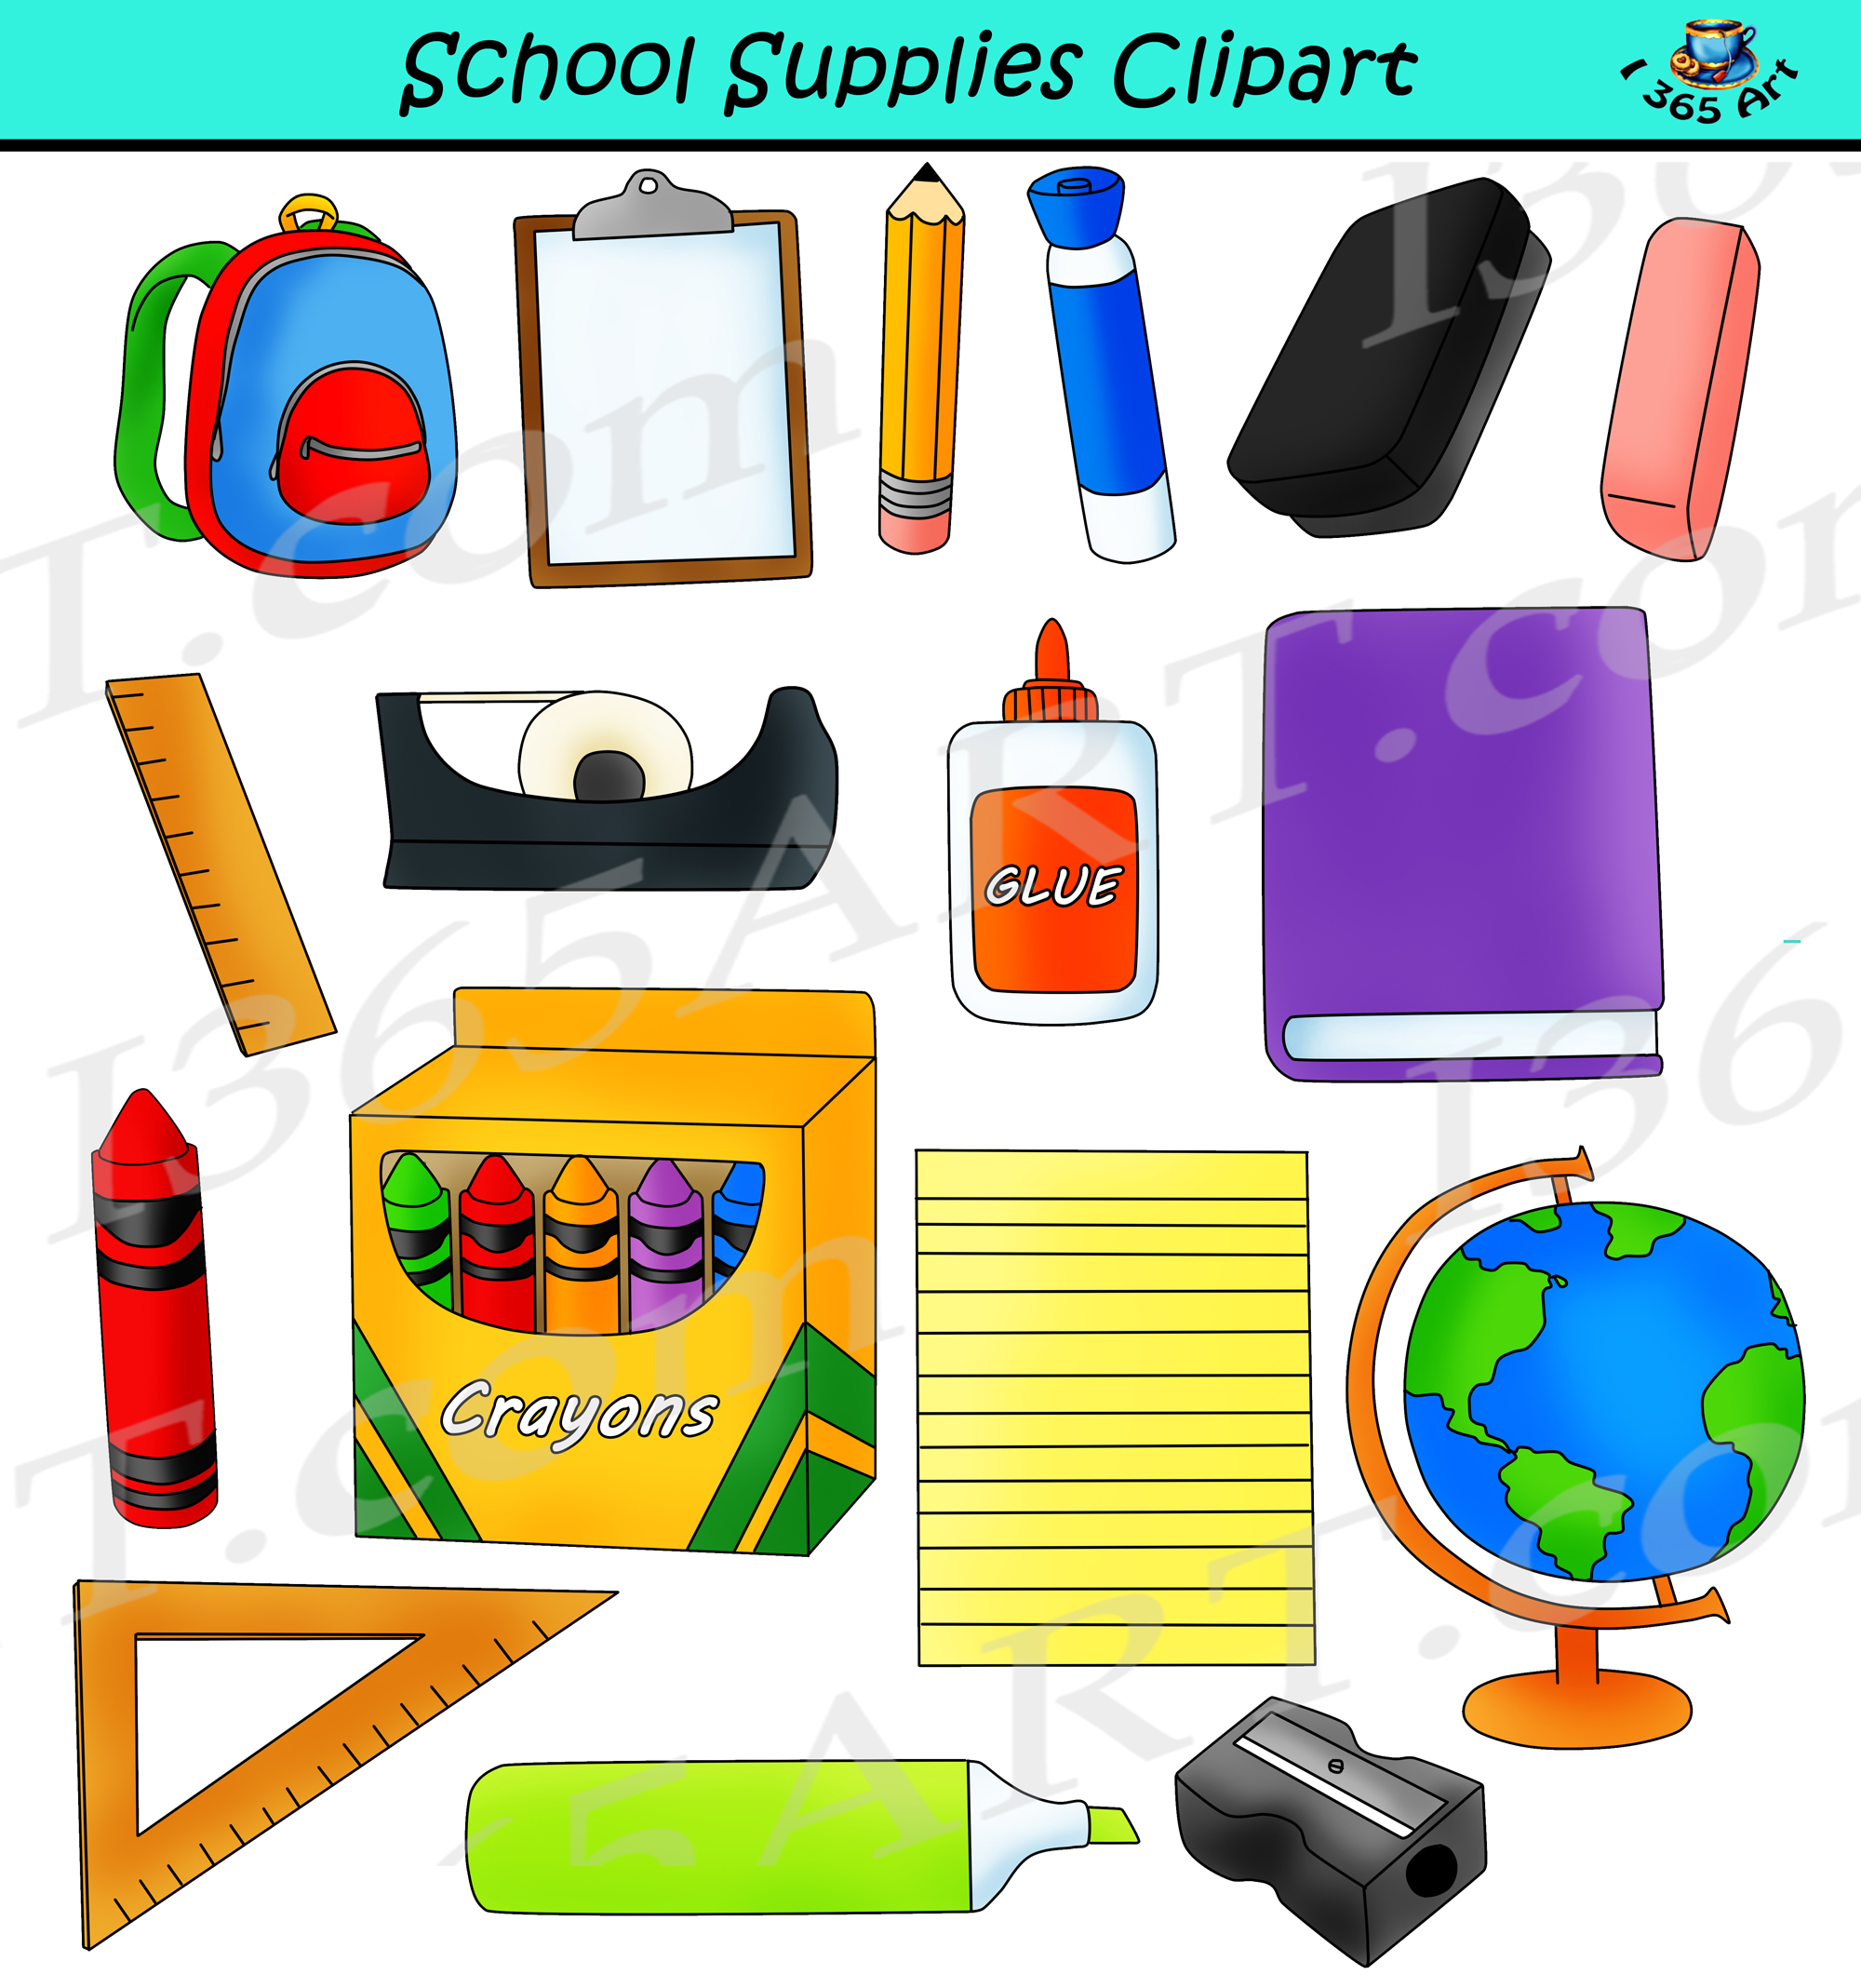 School supplu clipart svg free download School Supplies Clipart - Back To School Commercial Graphics svg free download